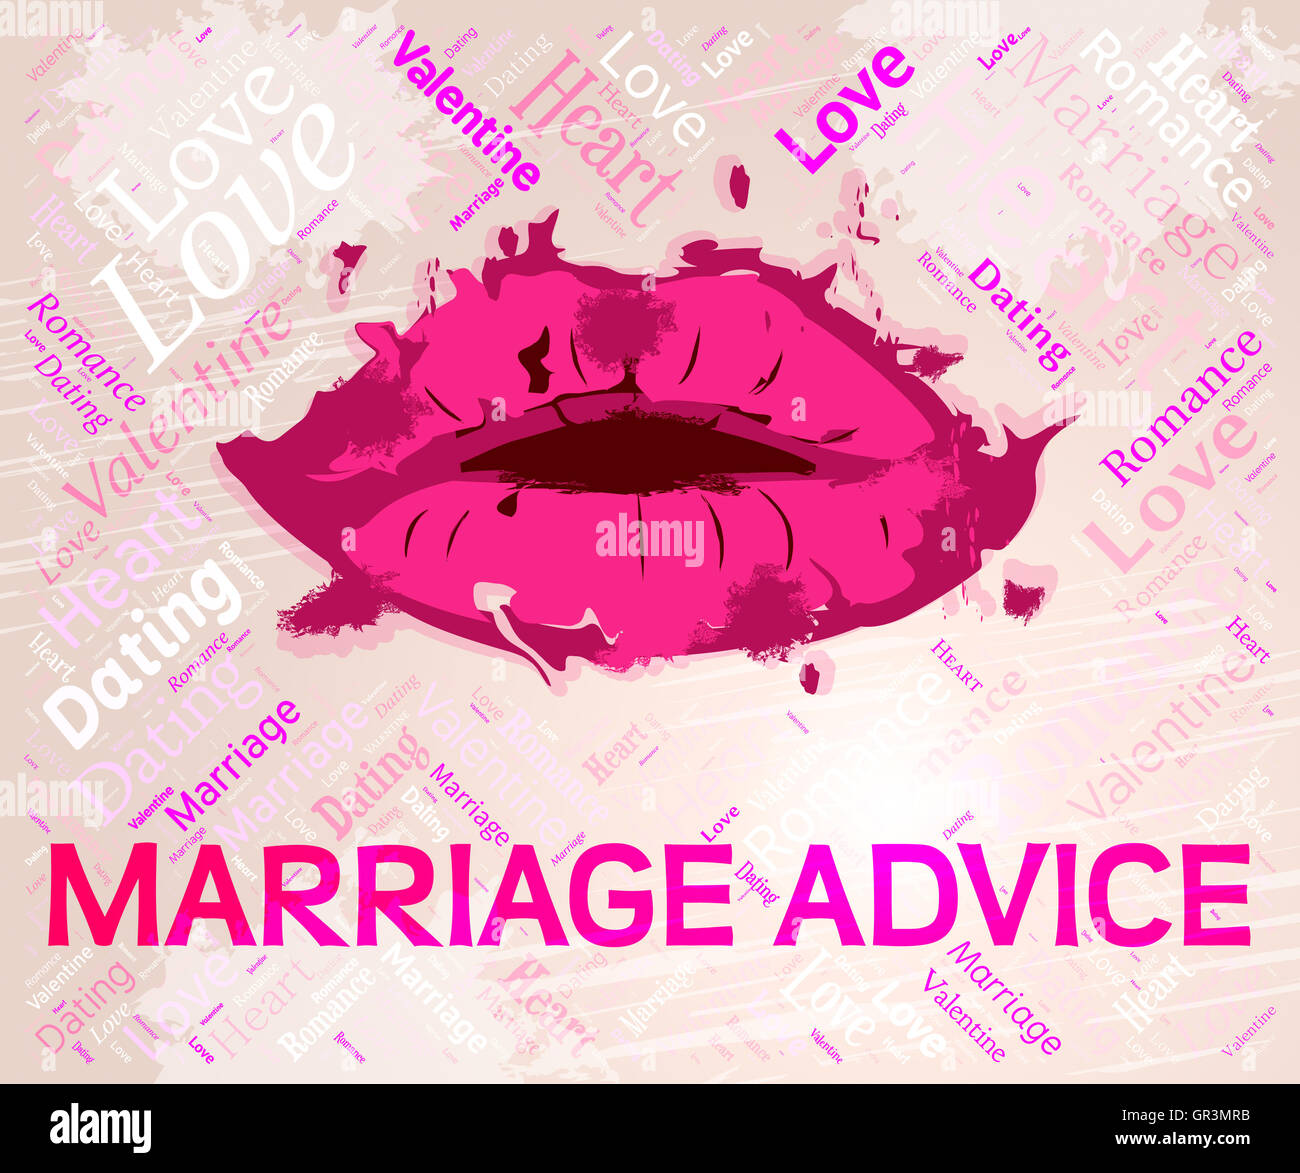 Marriage Advice Meaning Partner Wedding And Relationship